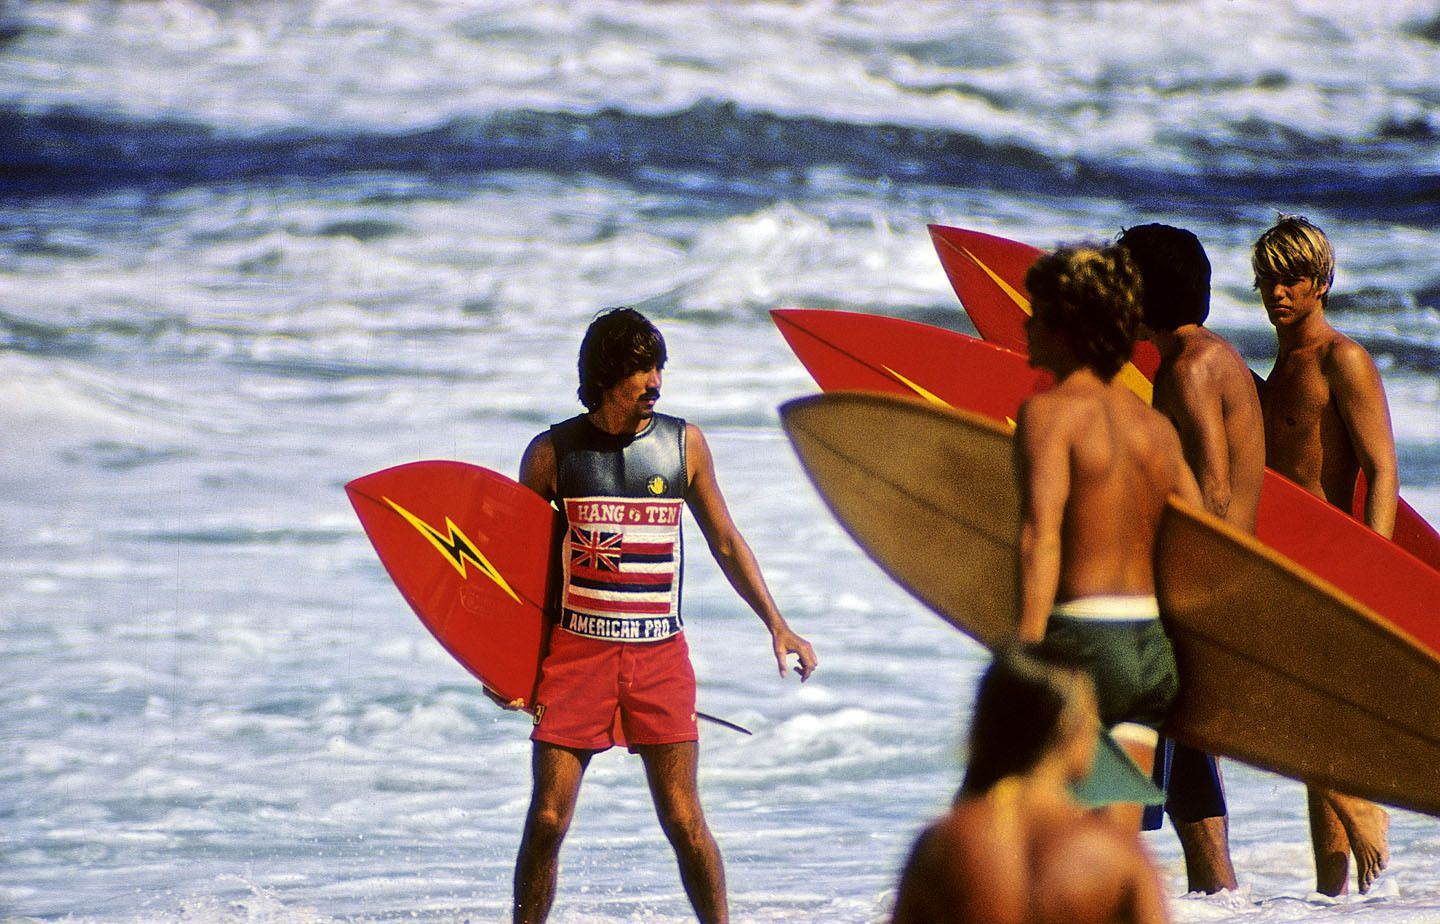 GERRY LOPEZ SUNSET BEACH, OAHU, HI. 1974